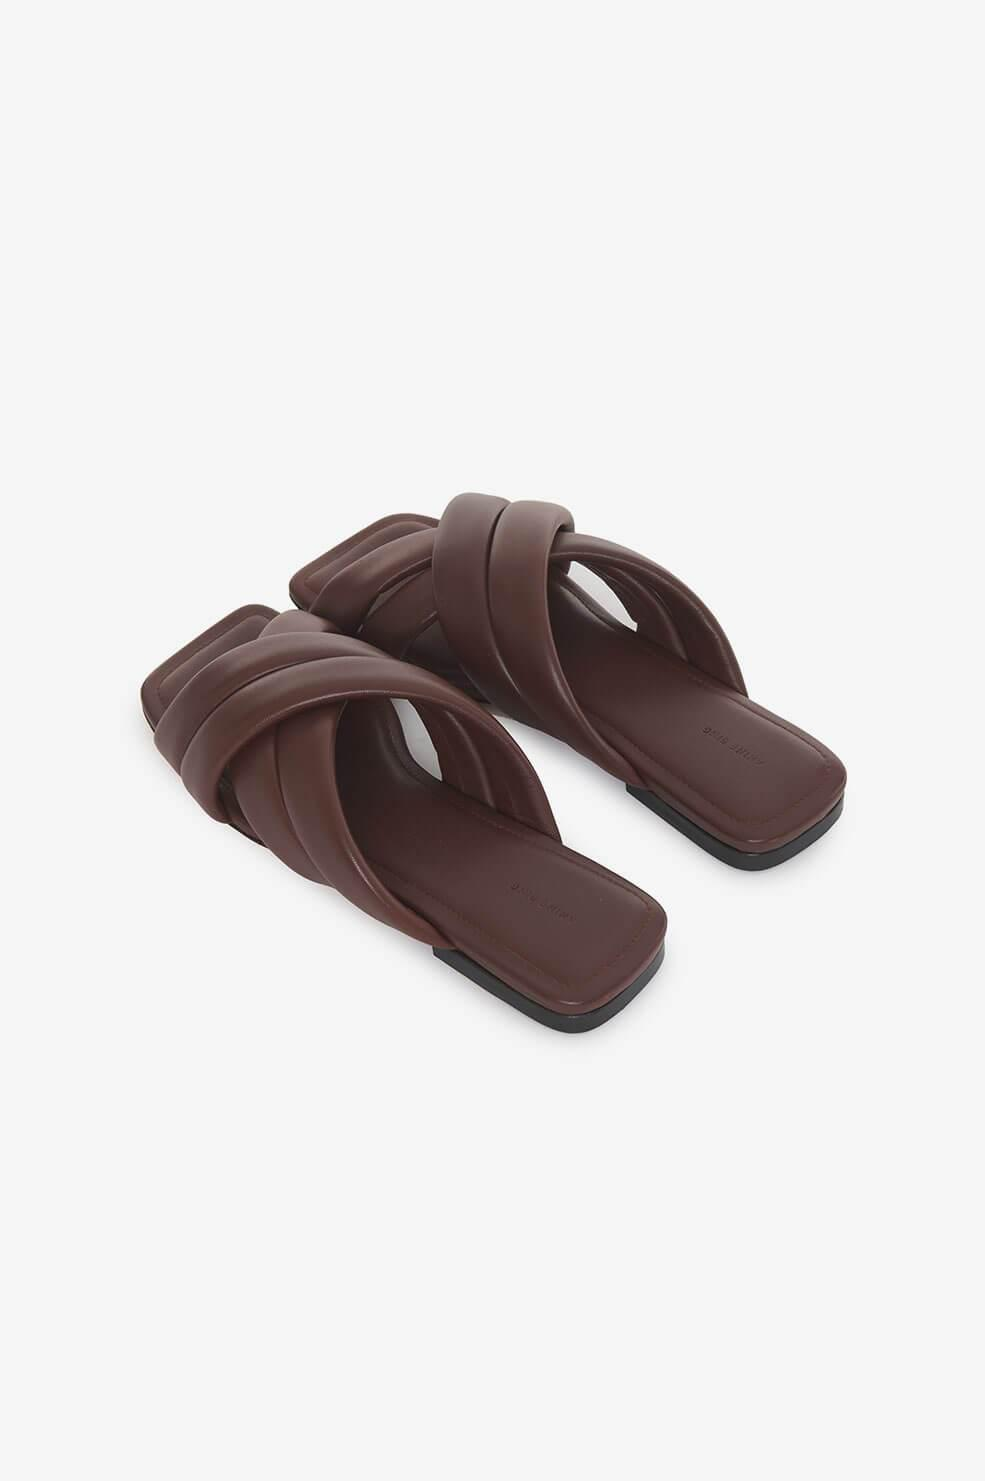 Eve Sandals - Chocolate Brown 3